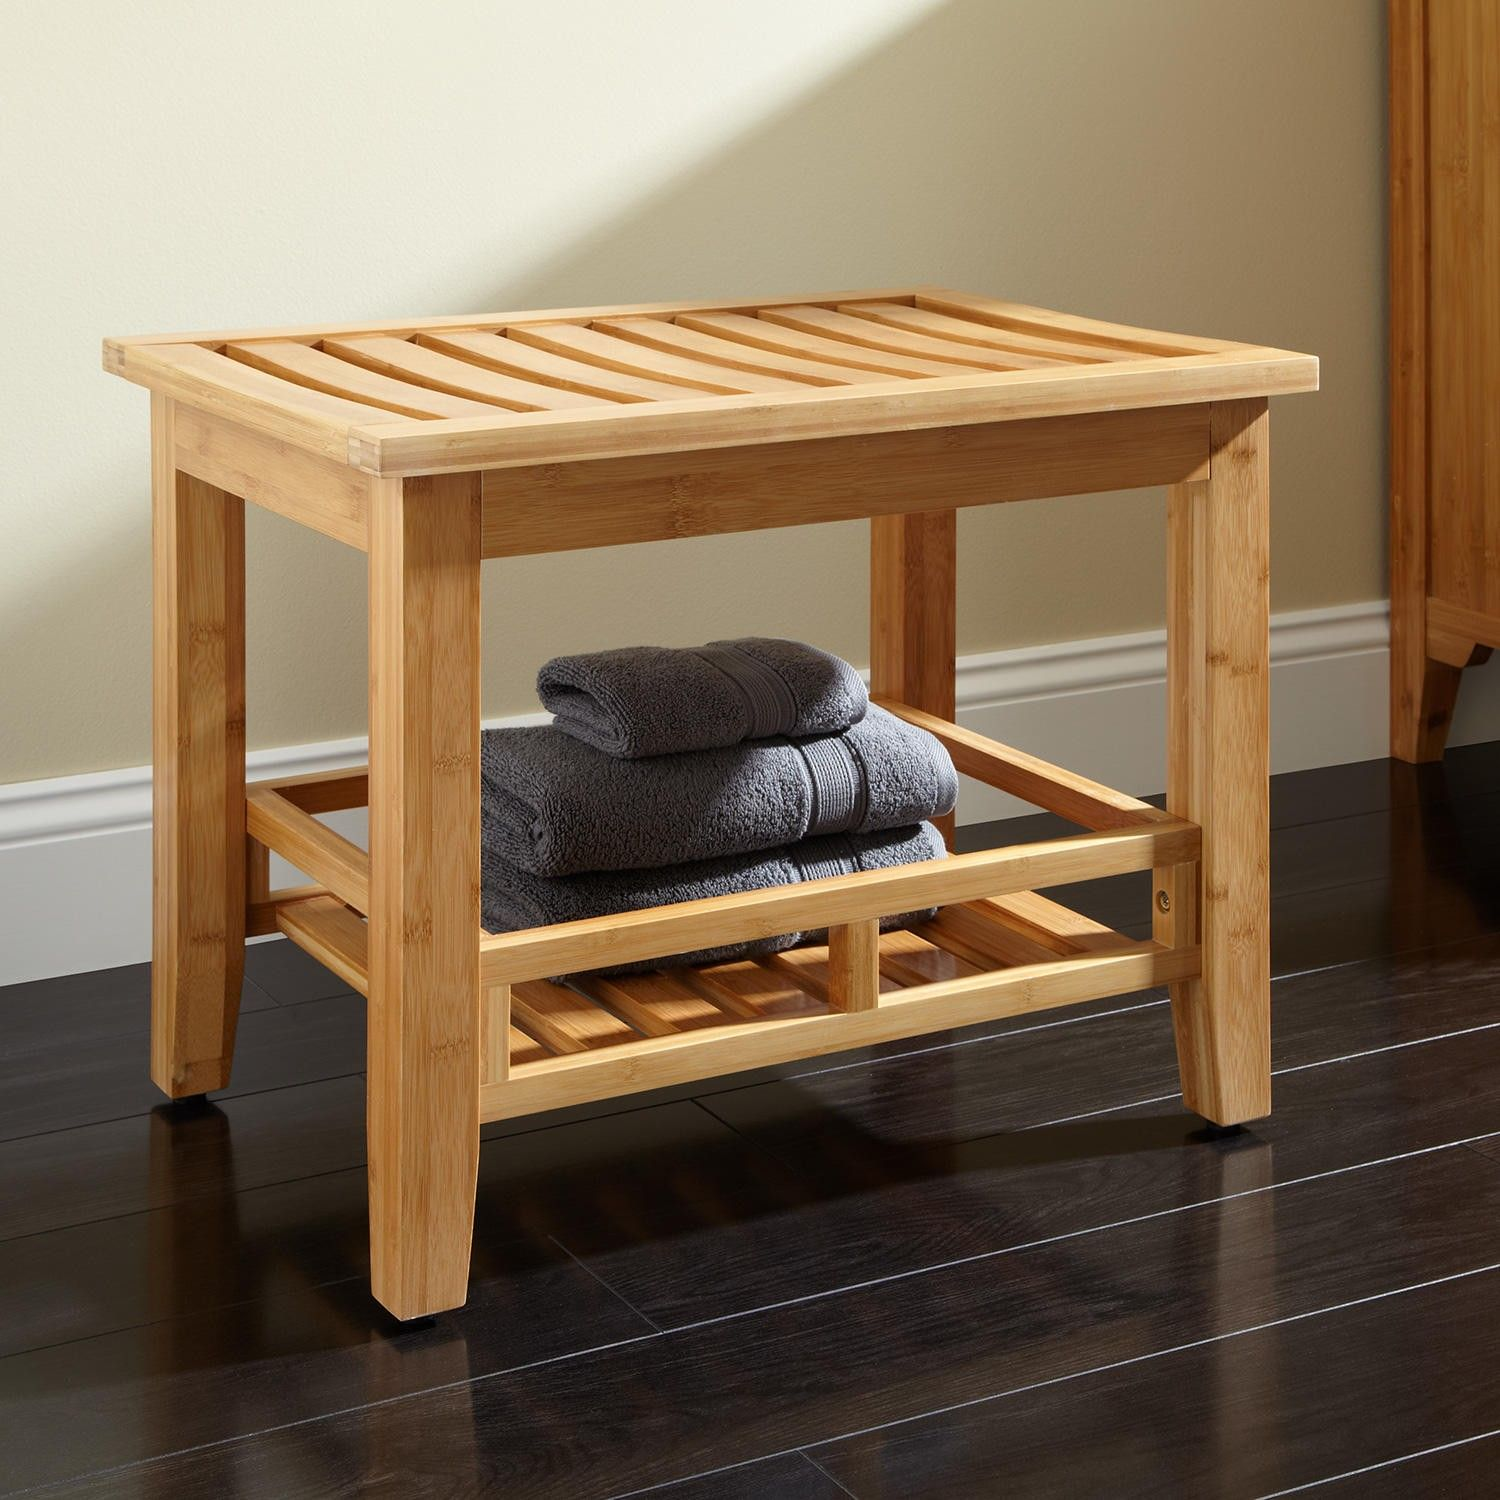 Pradit Bamboo Bathroom Stool | Bamboo bathroom, Stools and Bamboo ...